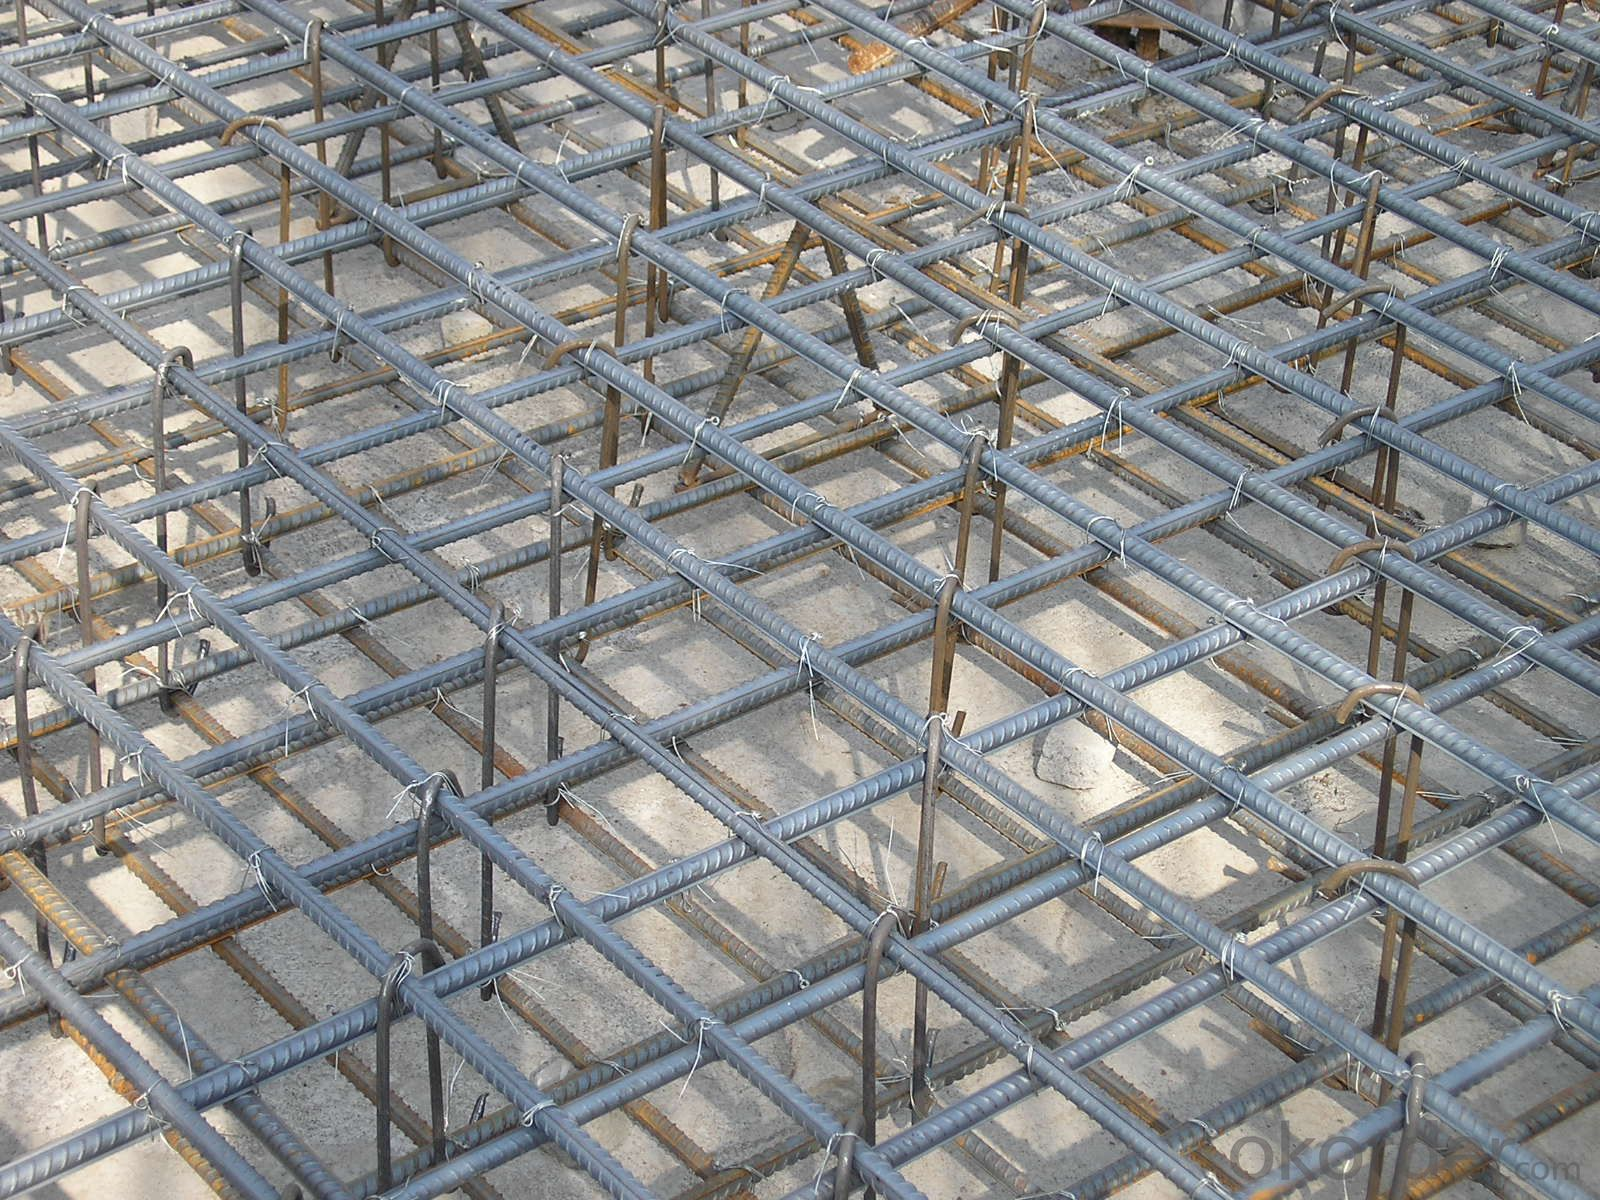 Reinforcing Deformed Steel Bars ASTM STANDARD